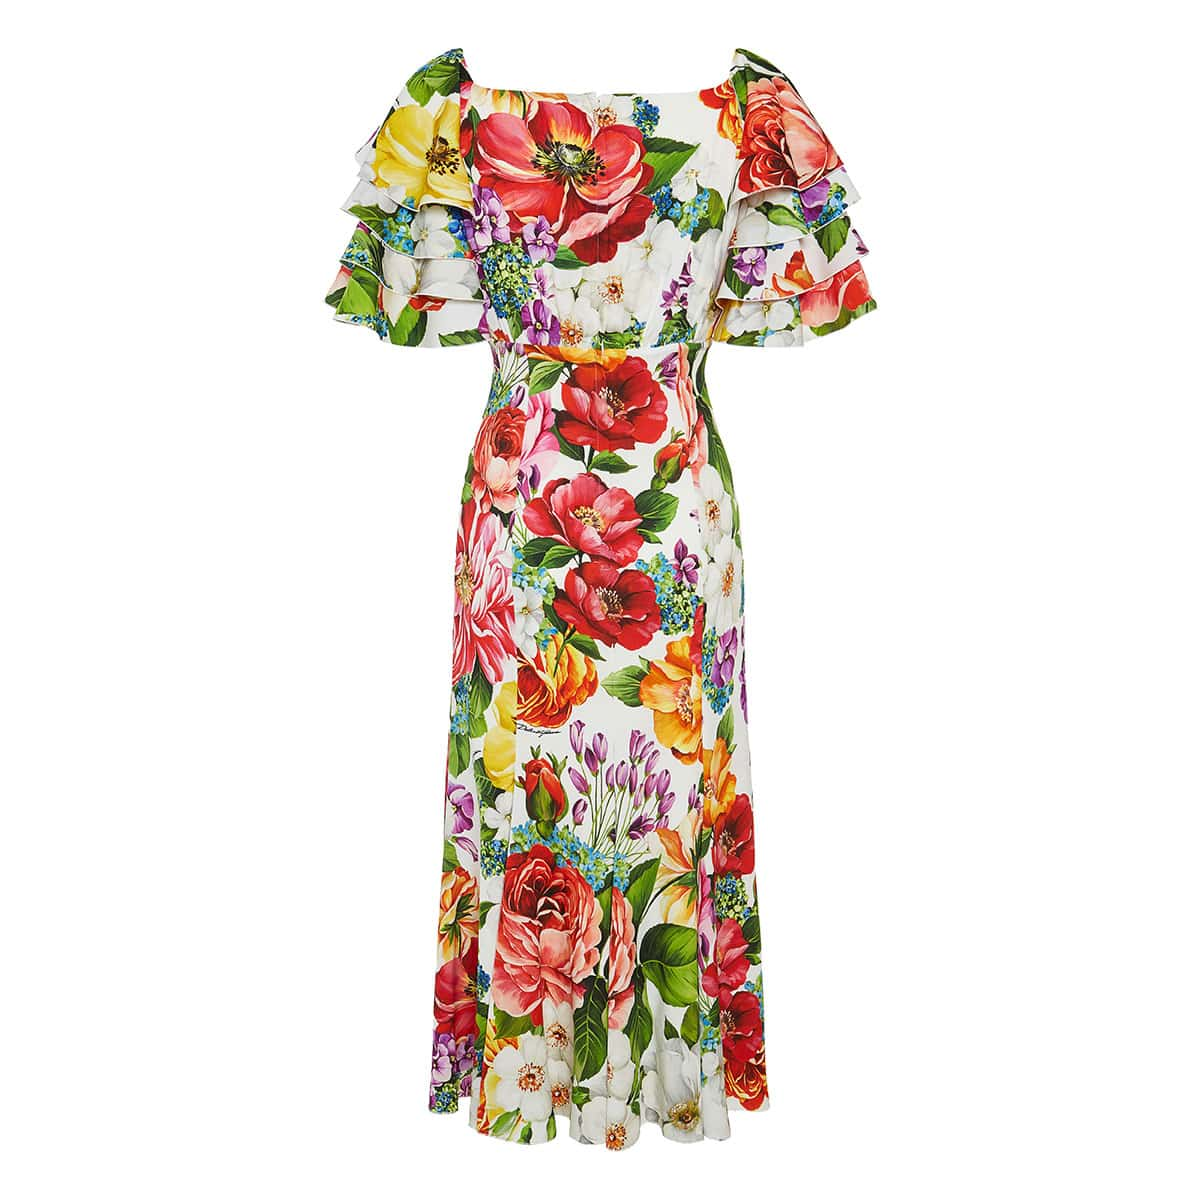 Ruffle-trimmed floral midi dress